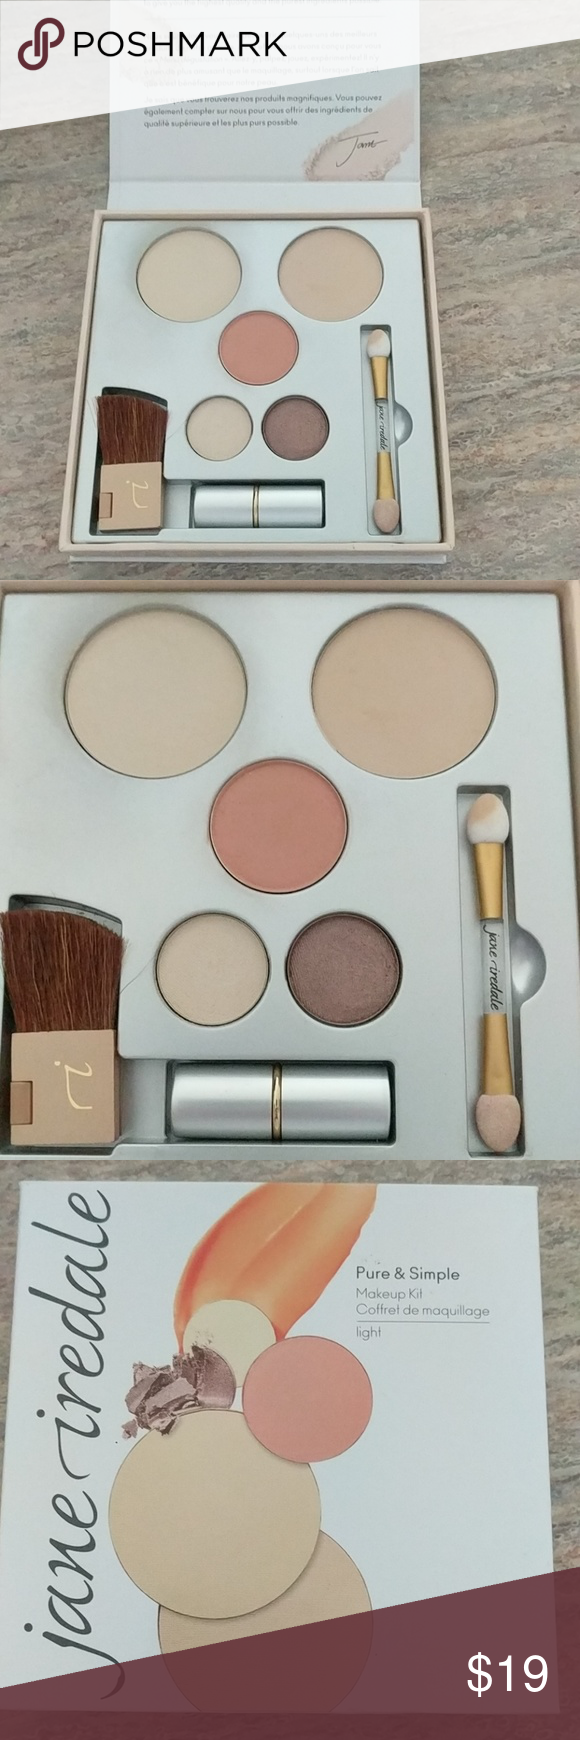 Jane Iredale makeup kit in Light Used twice. The colors